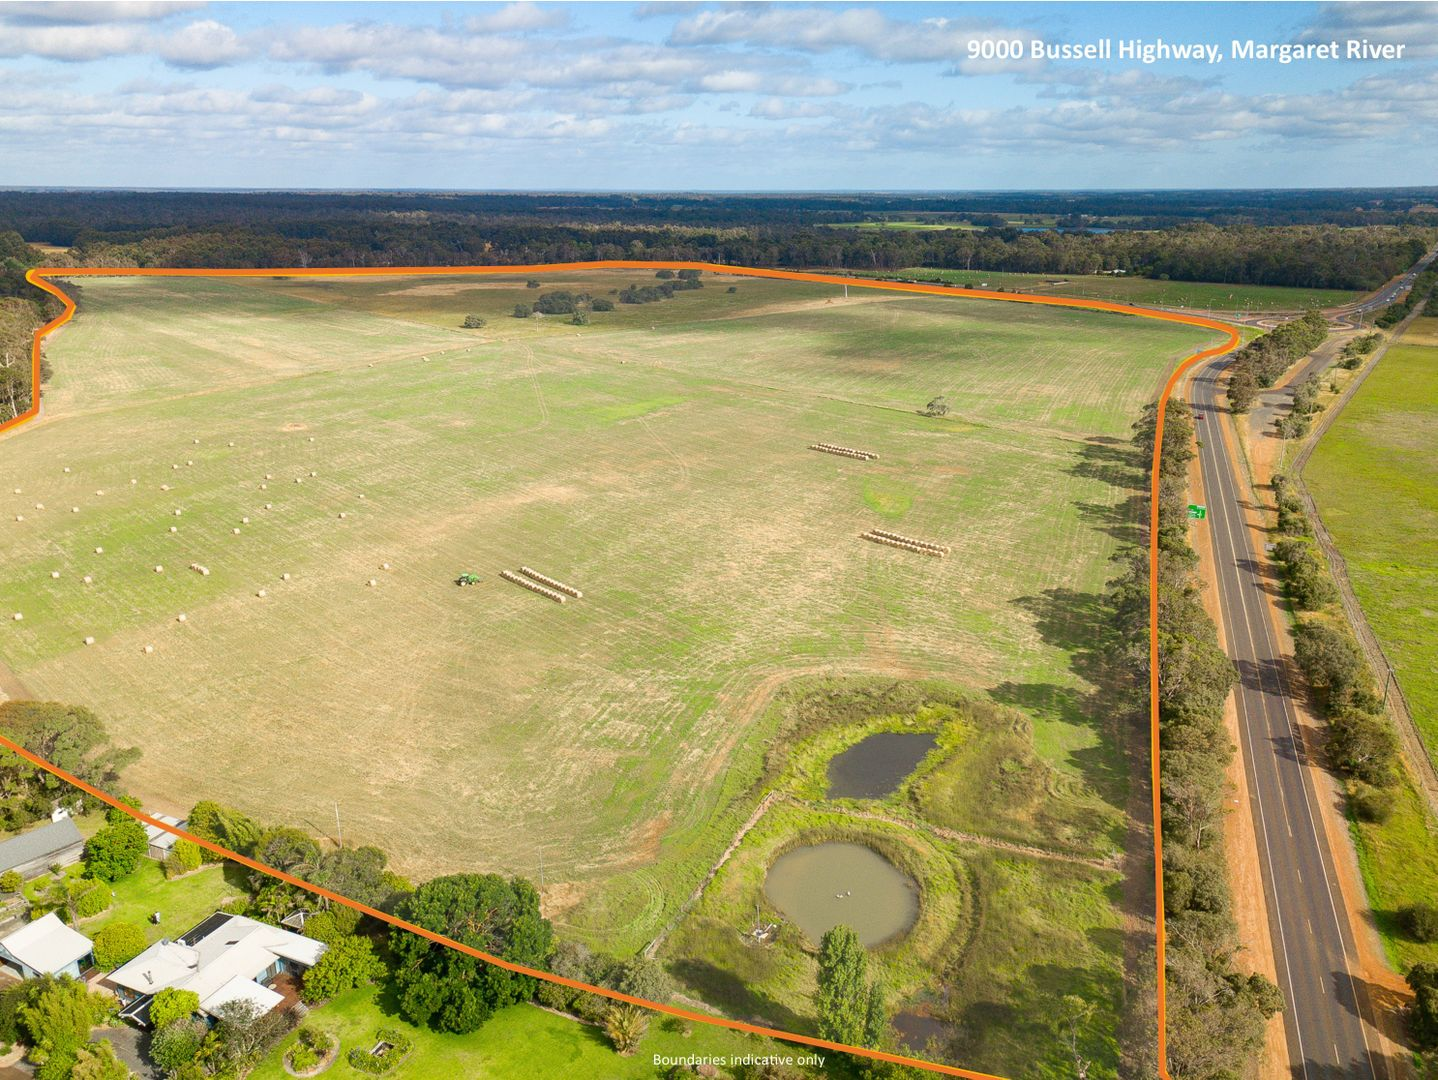 Lot 9000 Bussell Highway, Margaret River WA 6285, Image 2